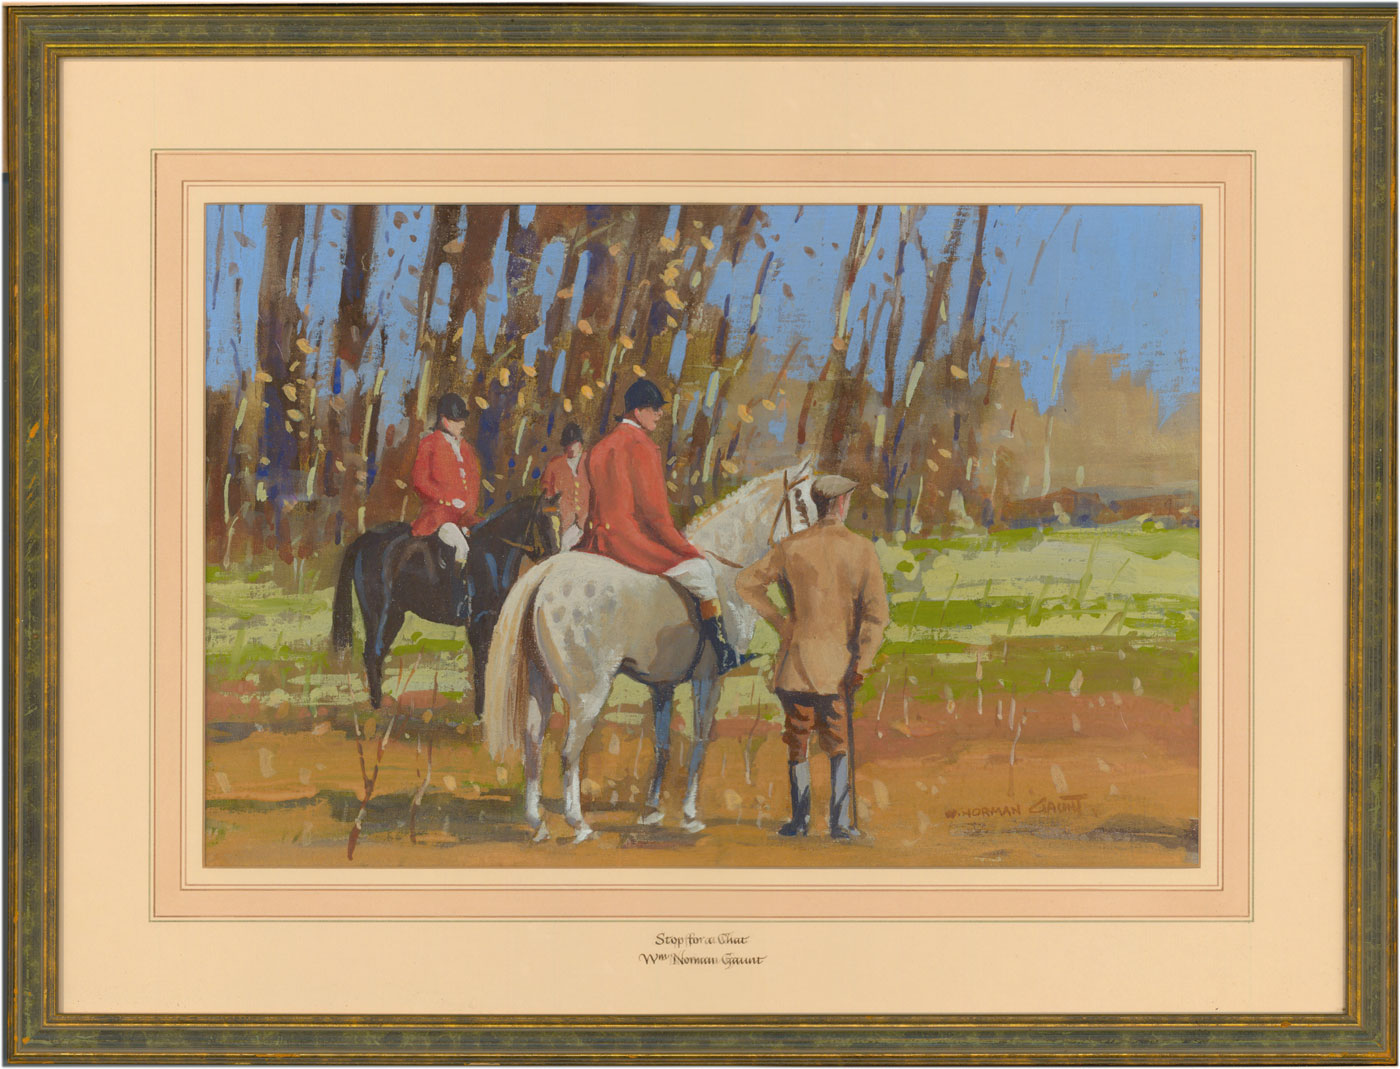 William Norman Gaunt (1918-2001) - Signed and Framed Gouache, Hunting Party